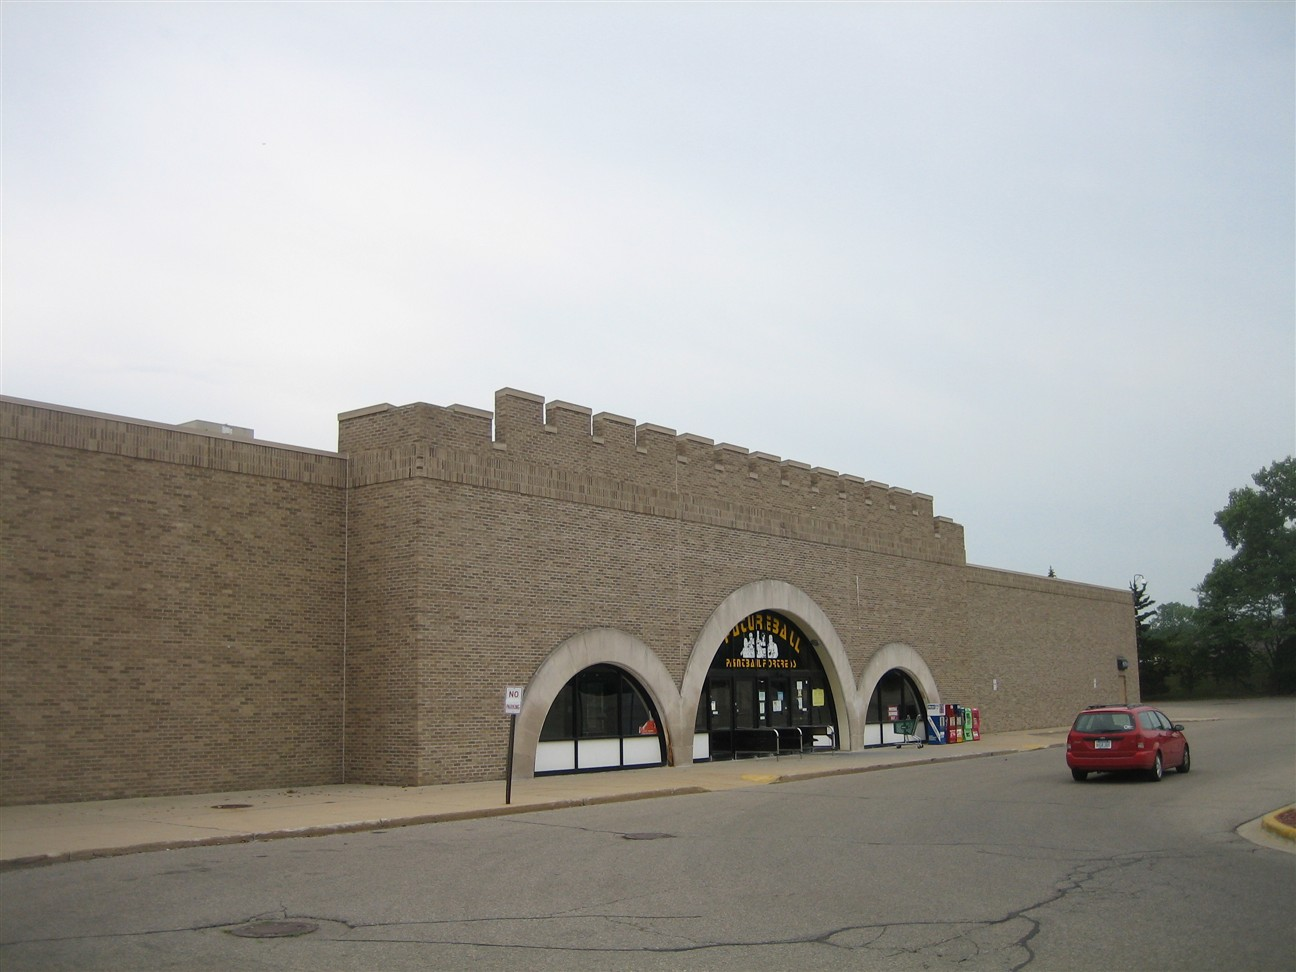 Livonia Mall former Child World/Children's Palace castle in Livonia, MI